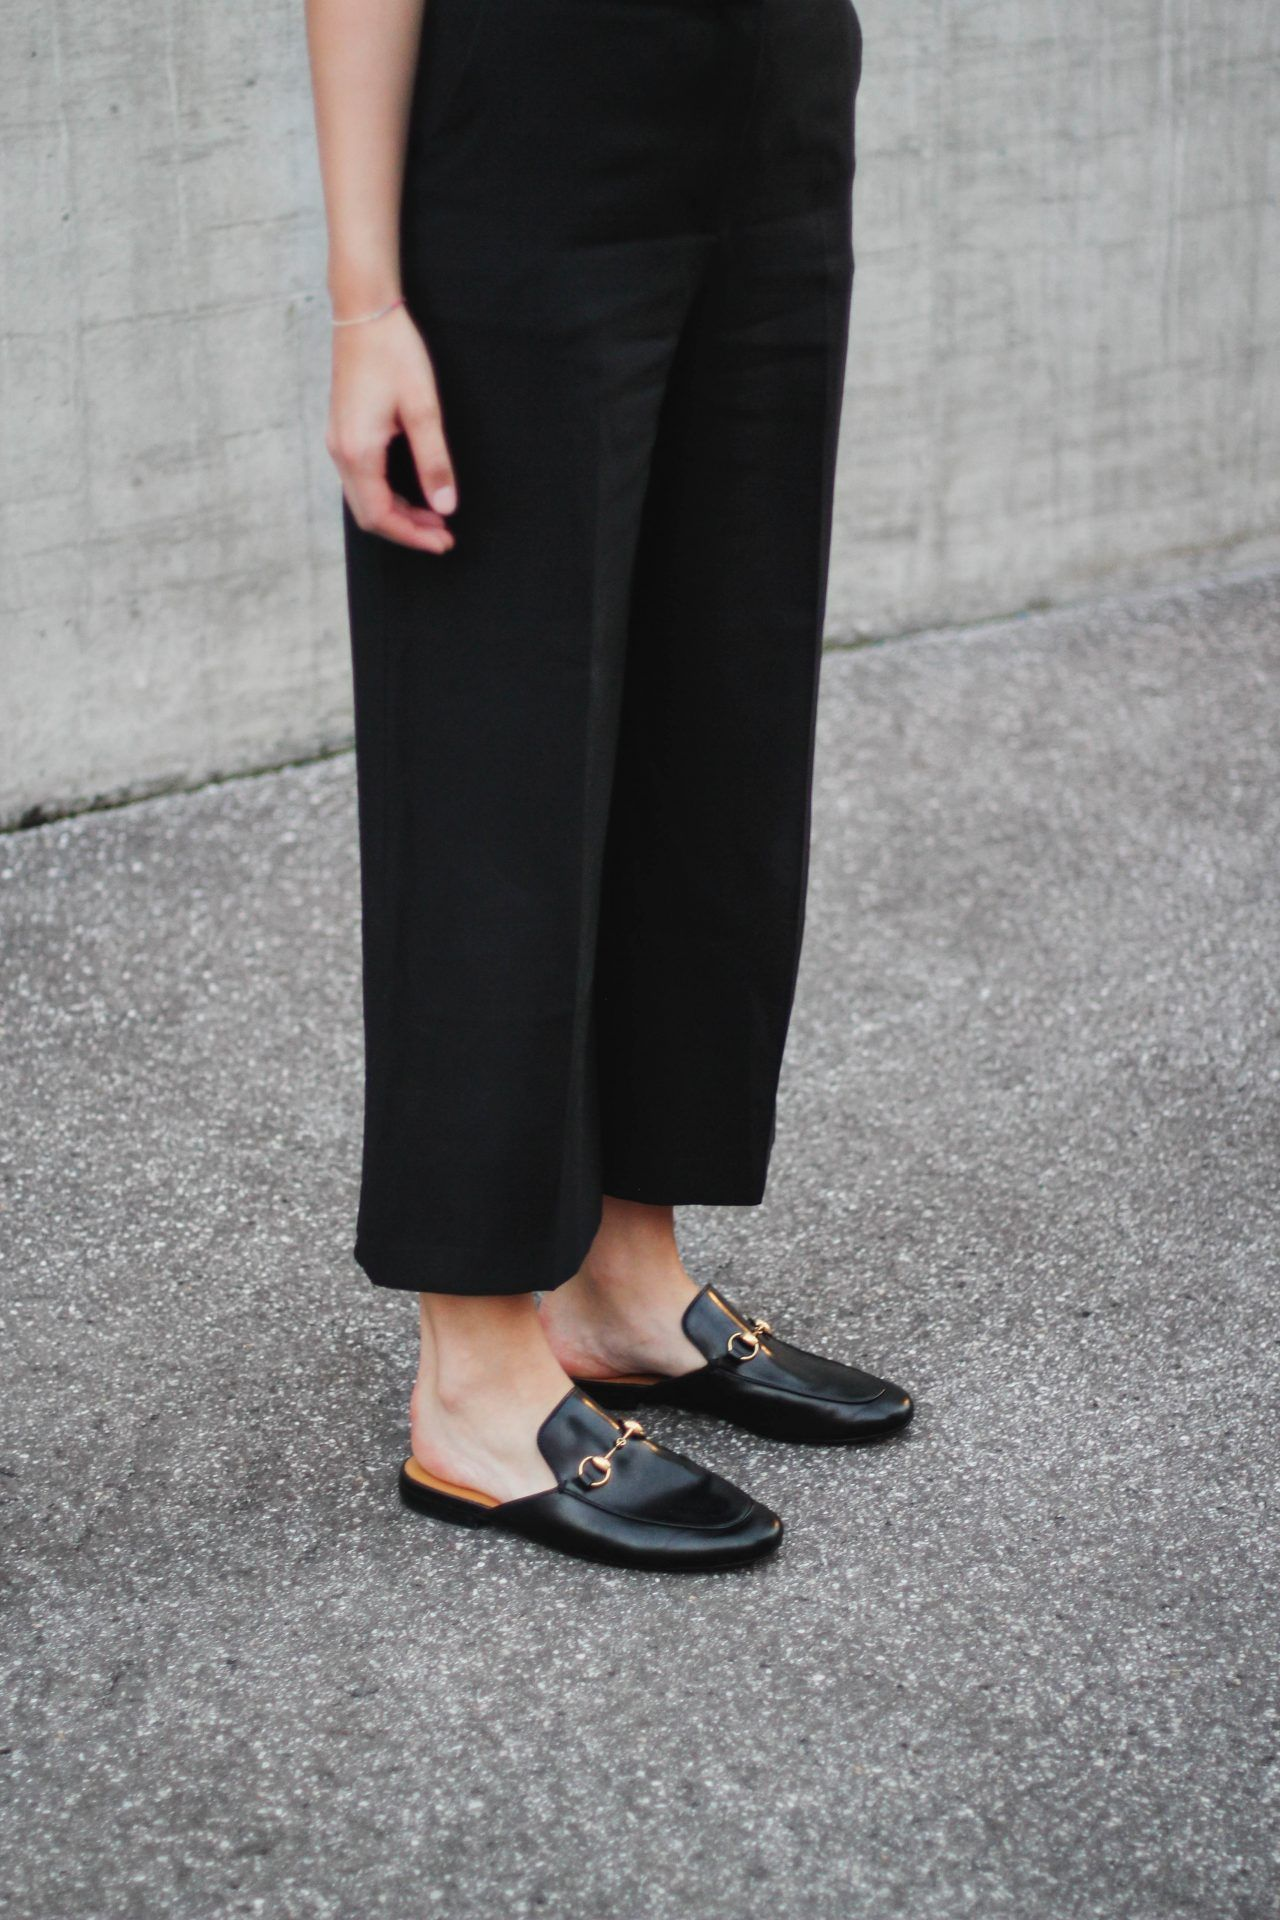 tifmys – Zara culottes & Gucci Princetown slippers. | tifmys ...